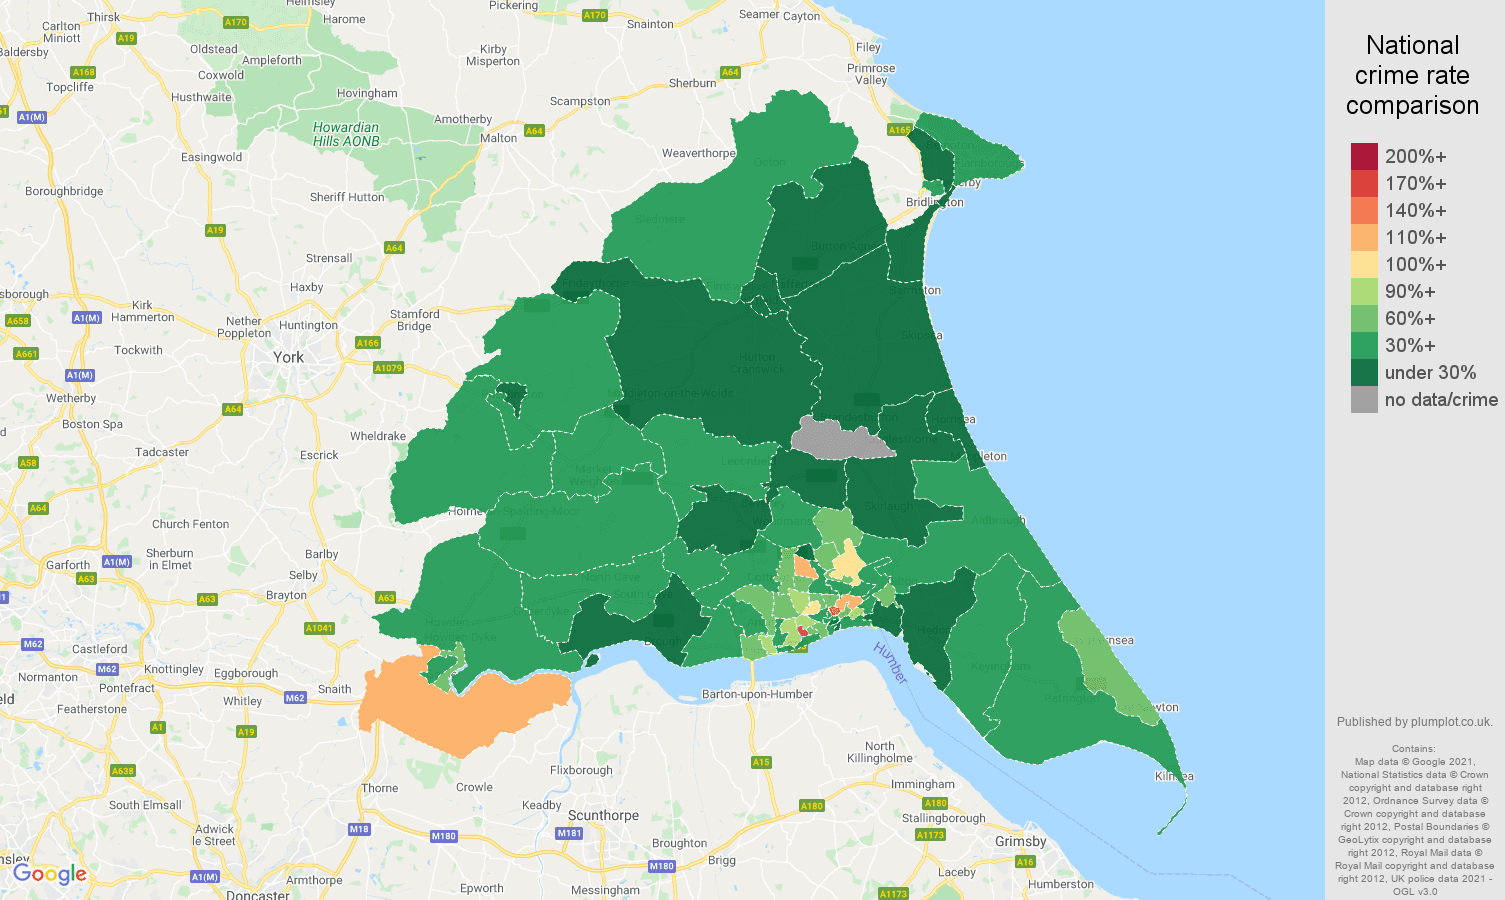 East Riding of Yorkshire vehicle crime rate comparison map